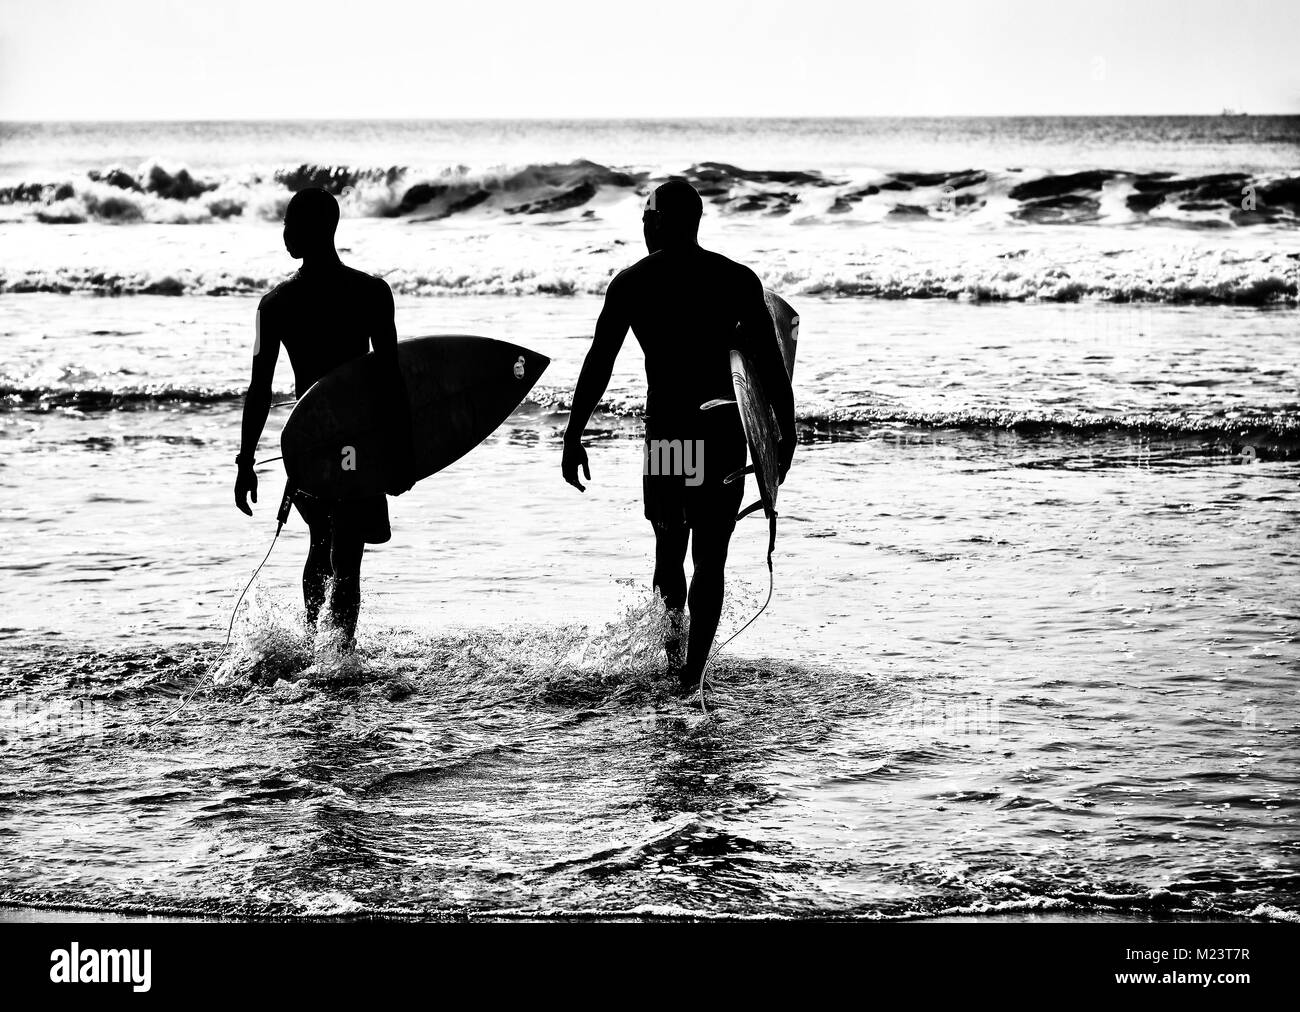 Surfers in Ghana - Stock Image